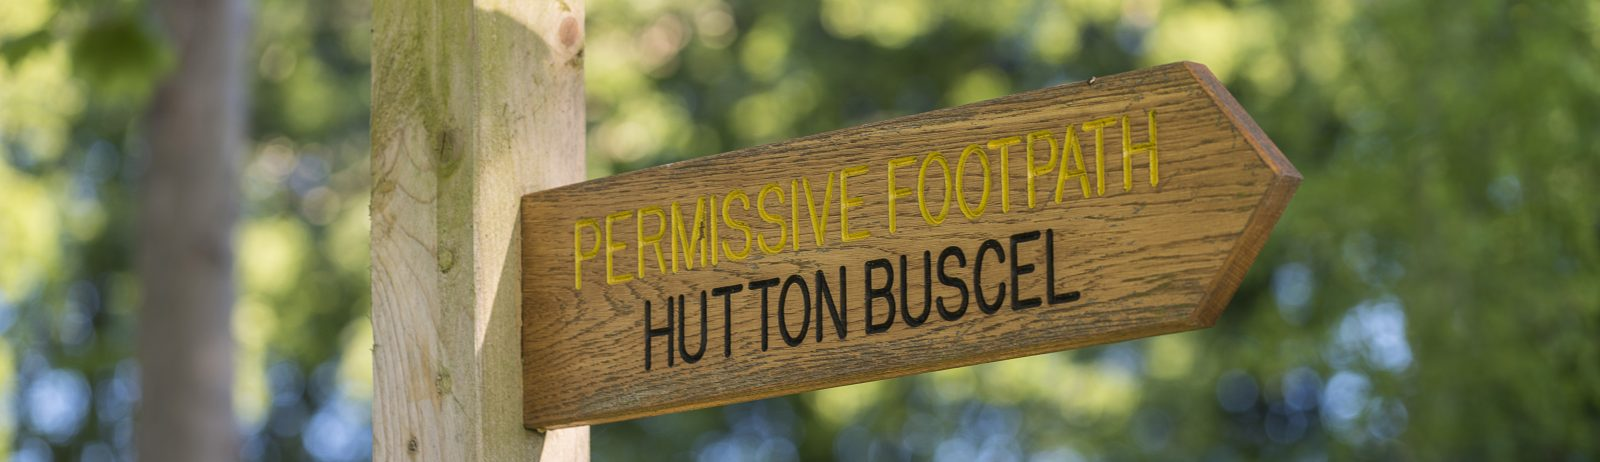 picture_of_footpath_sign